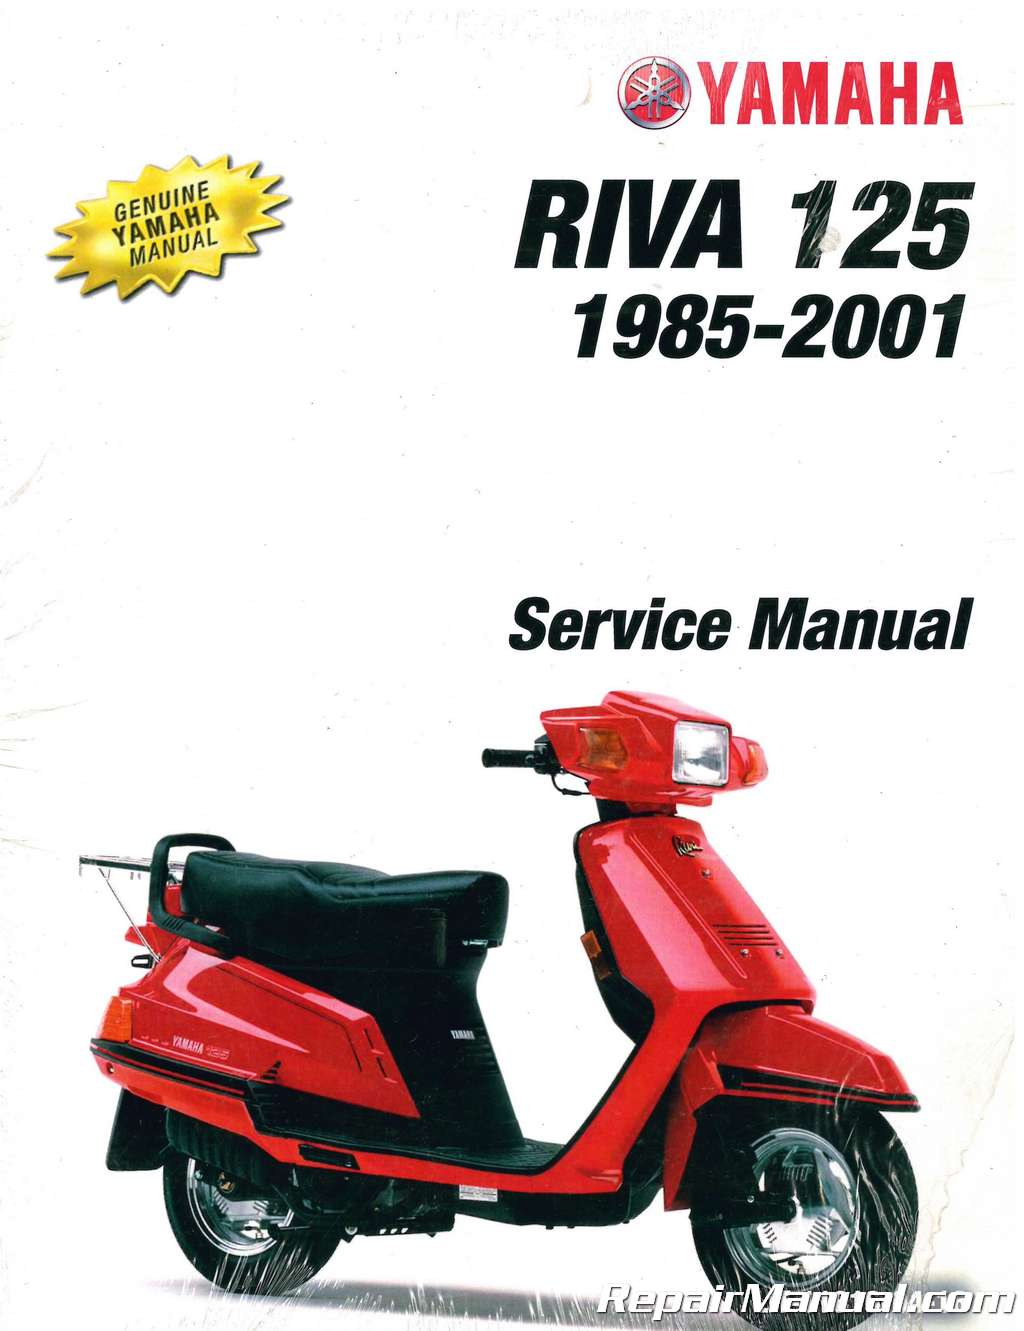 yamaha riva 125 wiring schematic parts   accessories other motorcycle manuals 1985 2001 yamaha riva  1985 2001 yamaha riva